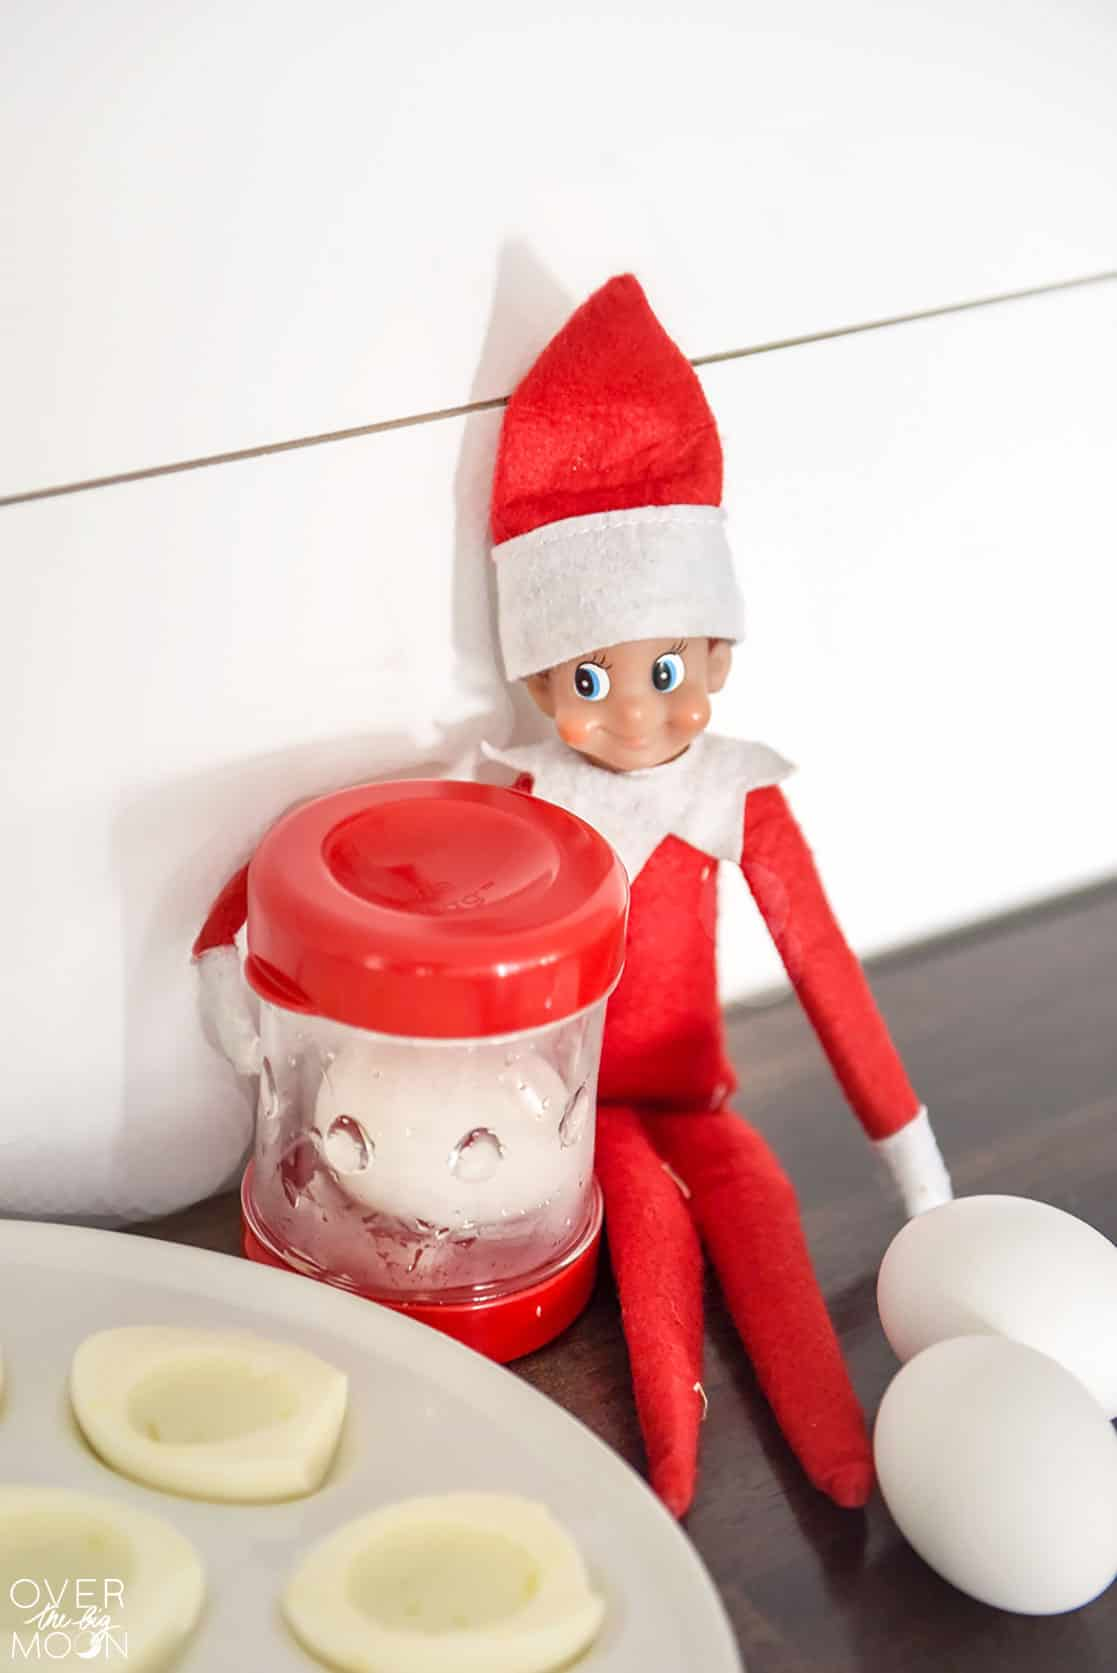 The Helpful Elf is at it again helping out around the house! Come see all the fun (and helping) he's doing! From overthebigmoon.com!